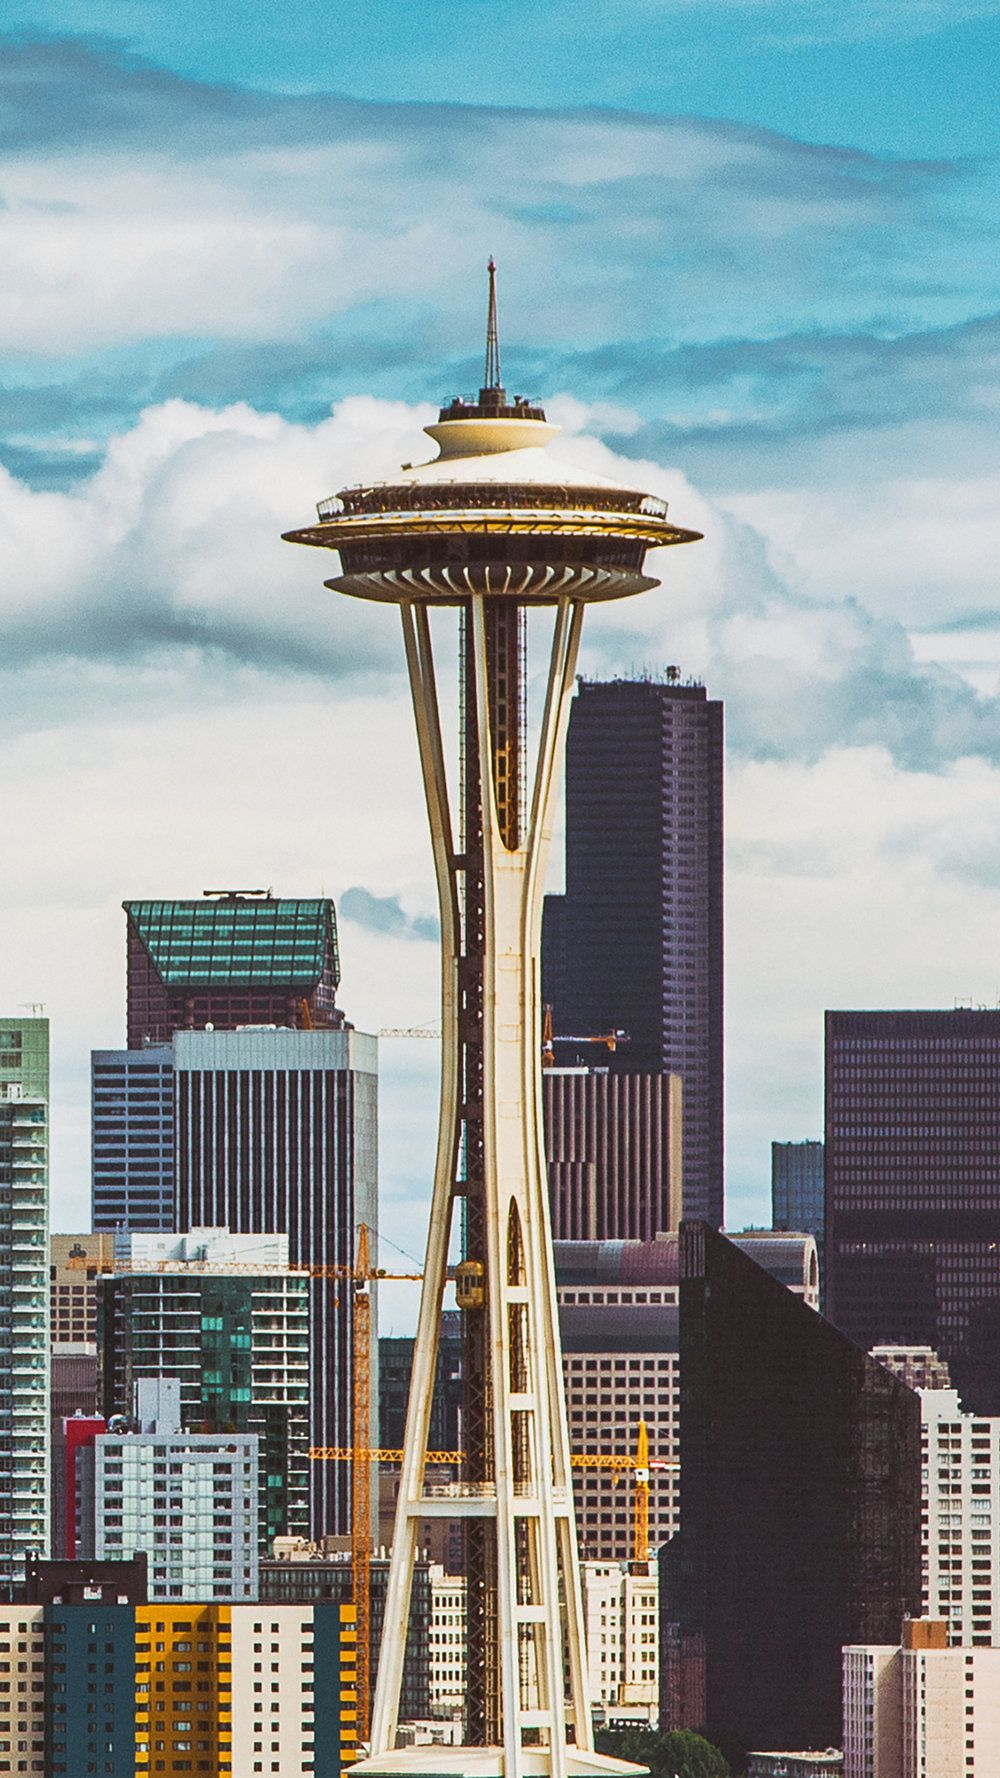 Seattle Iphone Wallpapers Top Free Seattle Iphone Backgrounds Wallpaperaccess